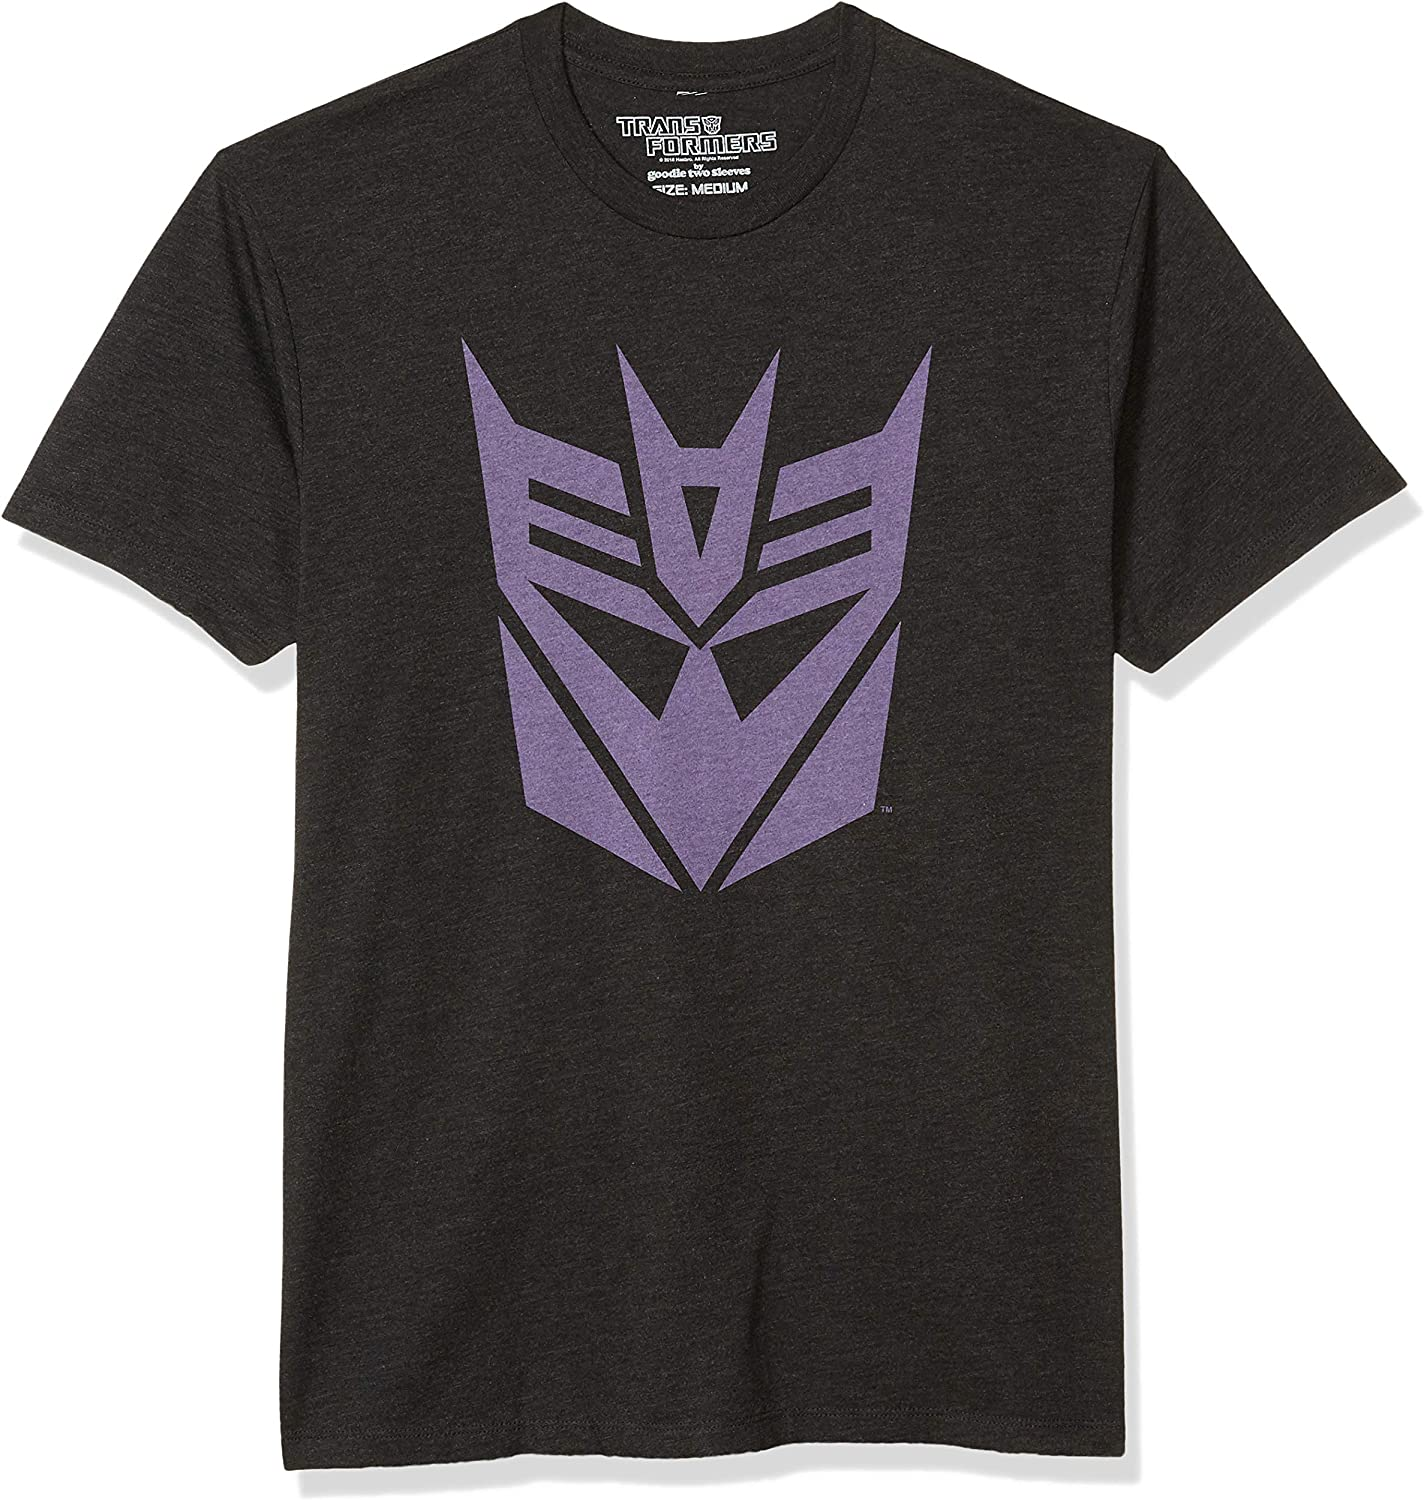 Goodie Two Sleeves Men's Transformers Decepticon Logo T-Shirt